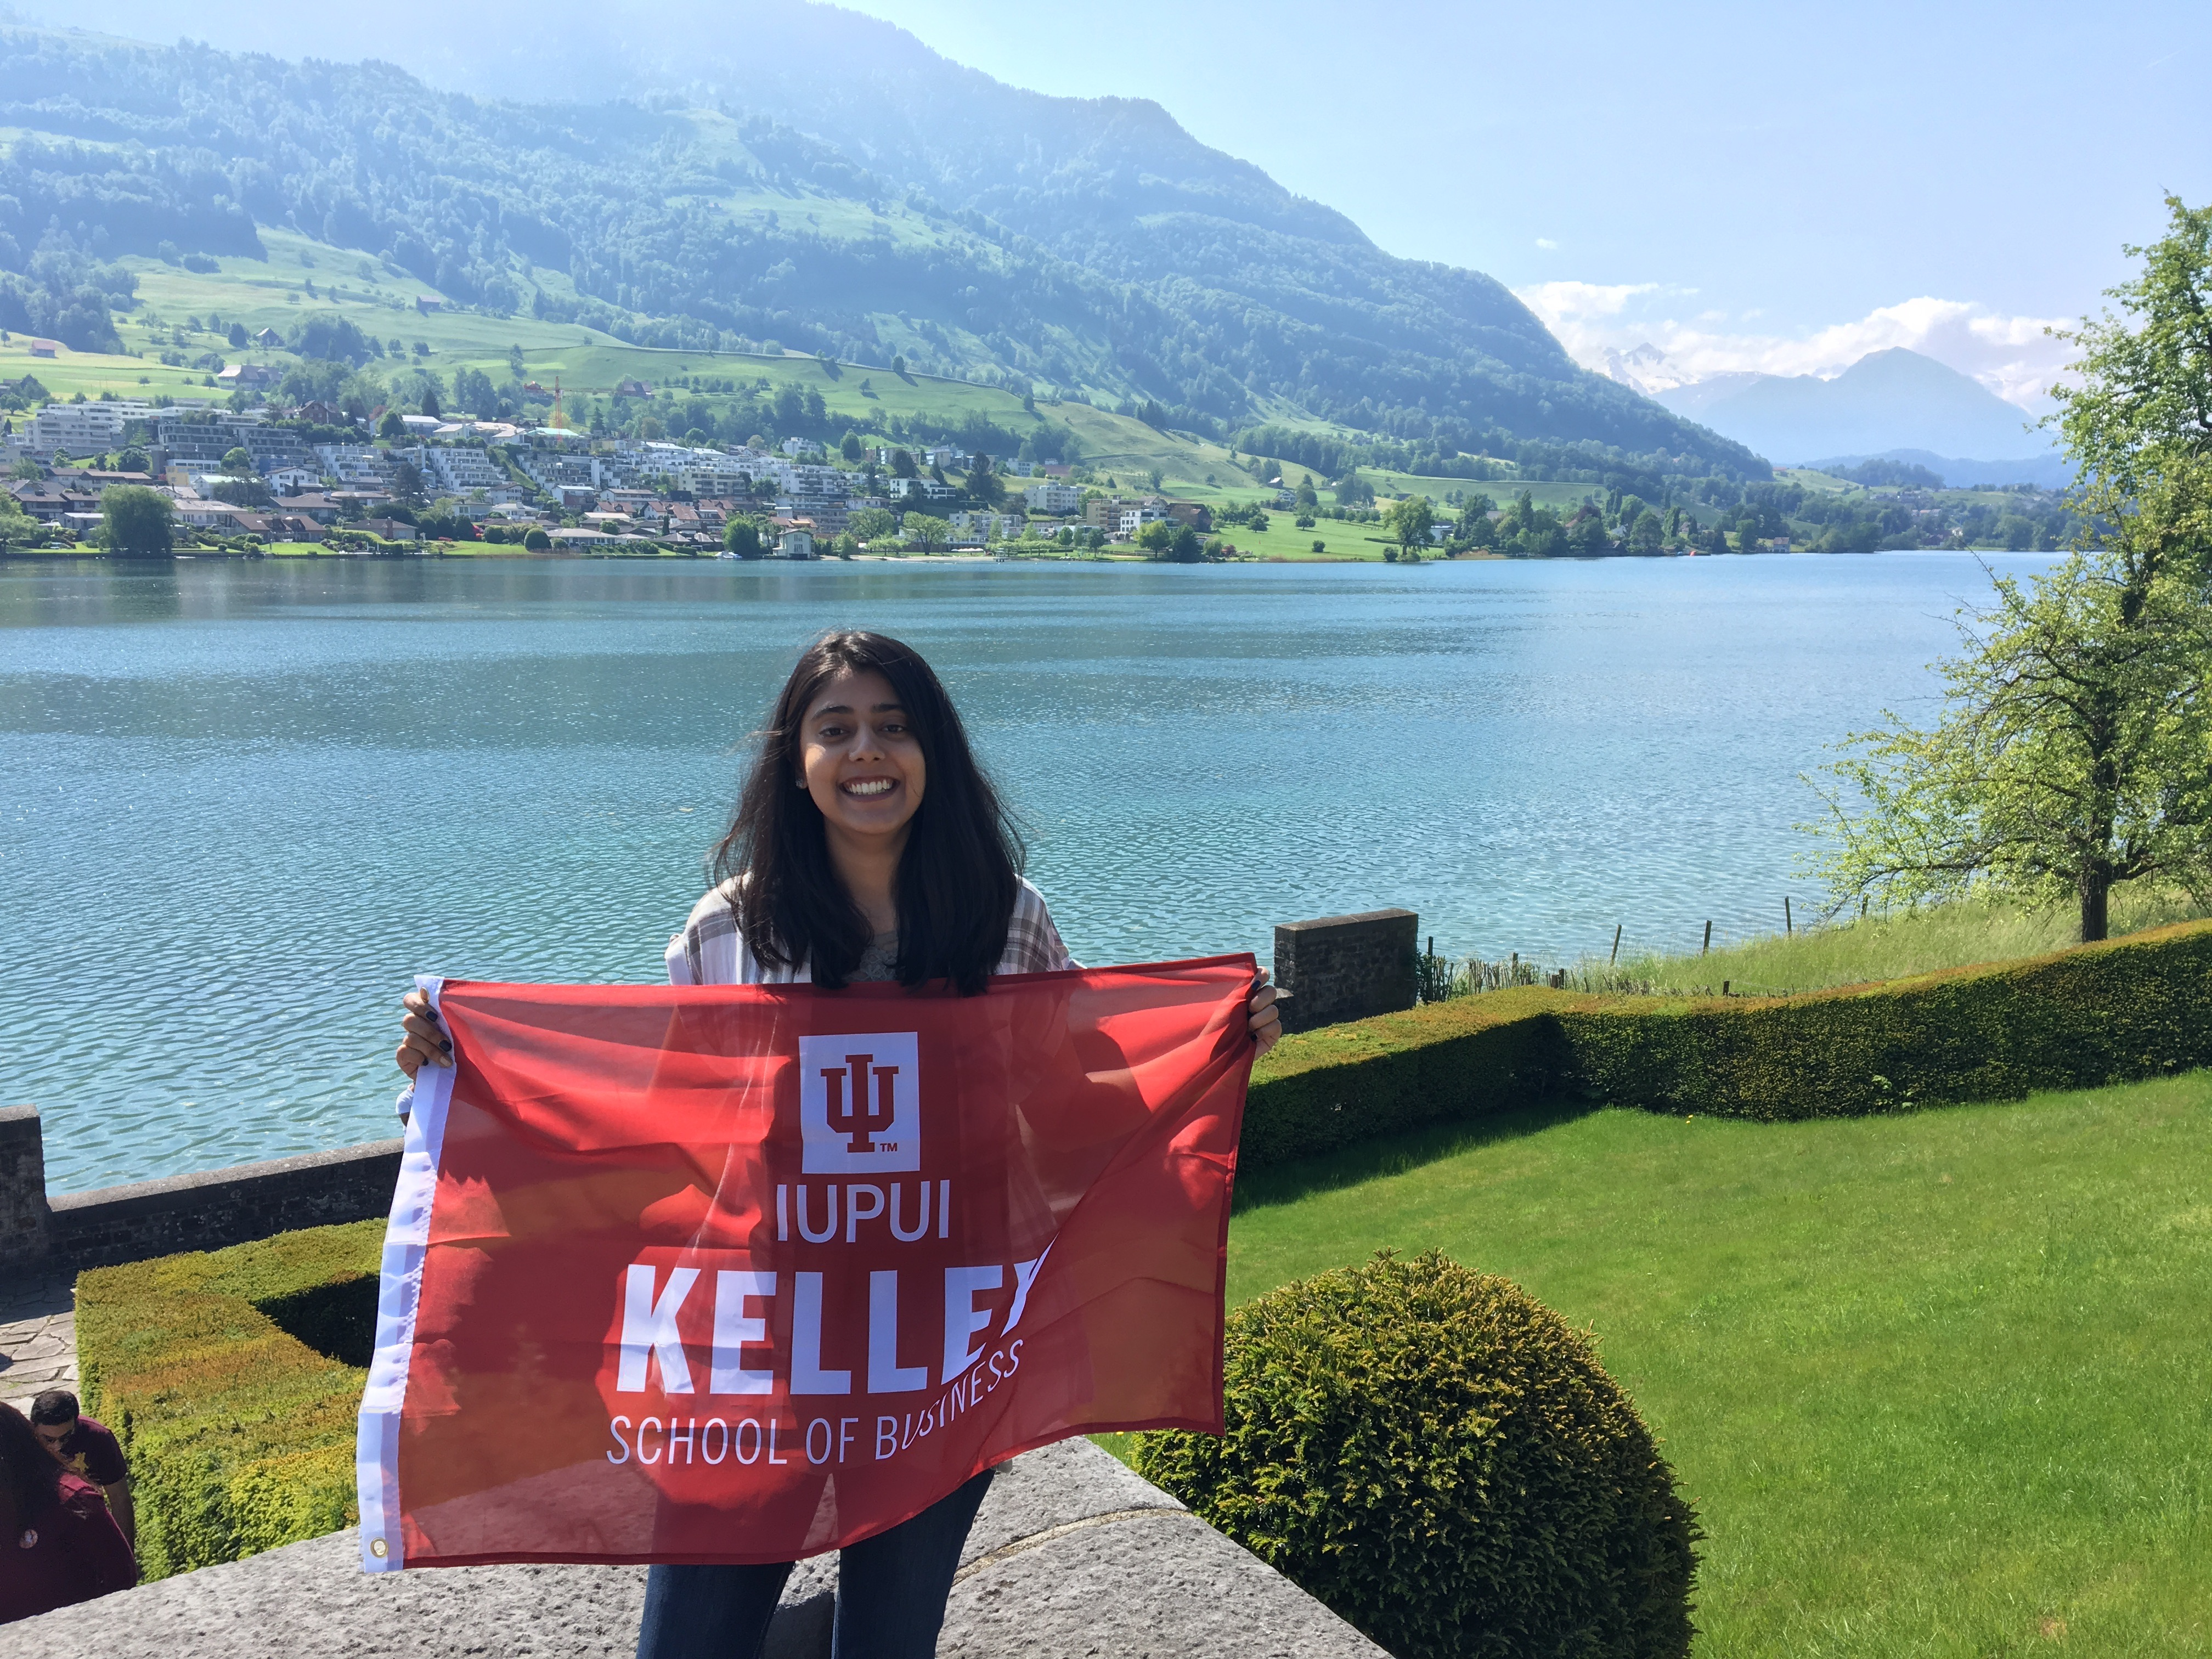 Saira Choudhry with IU Kelley School of Business Flag